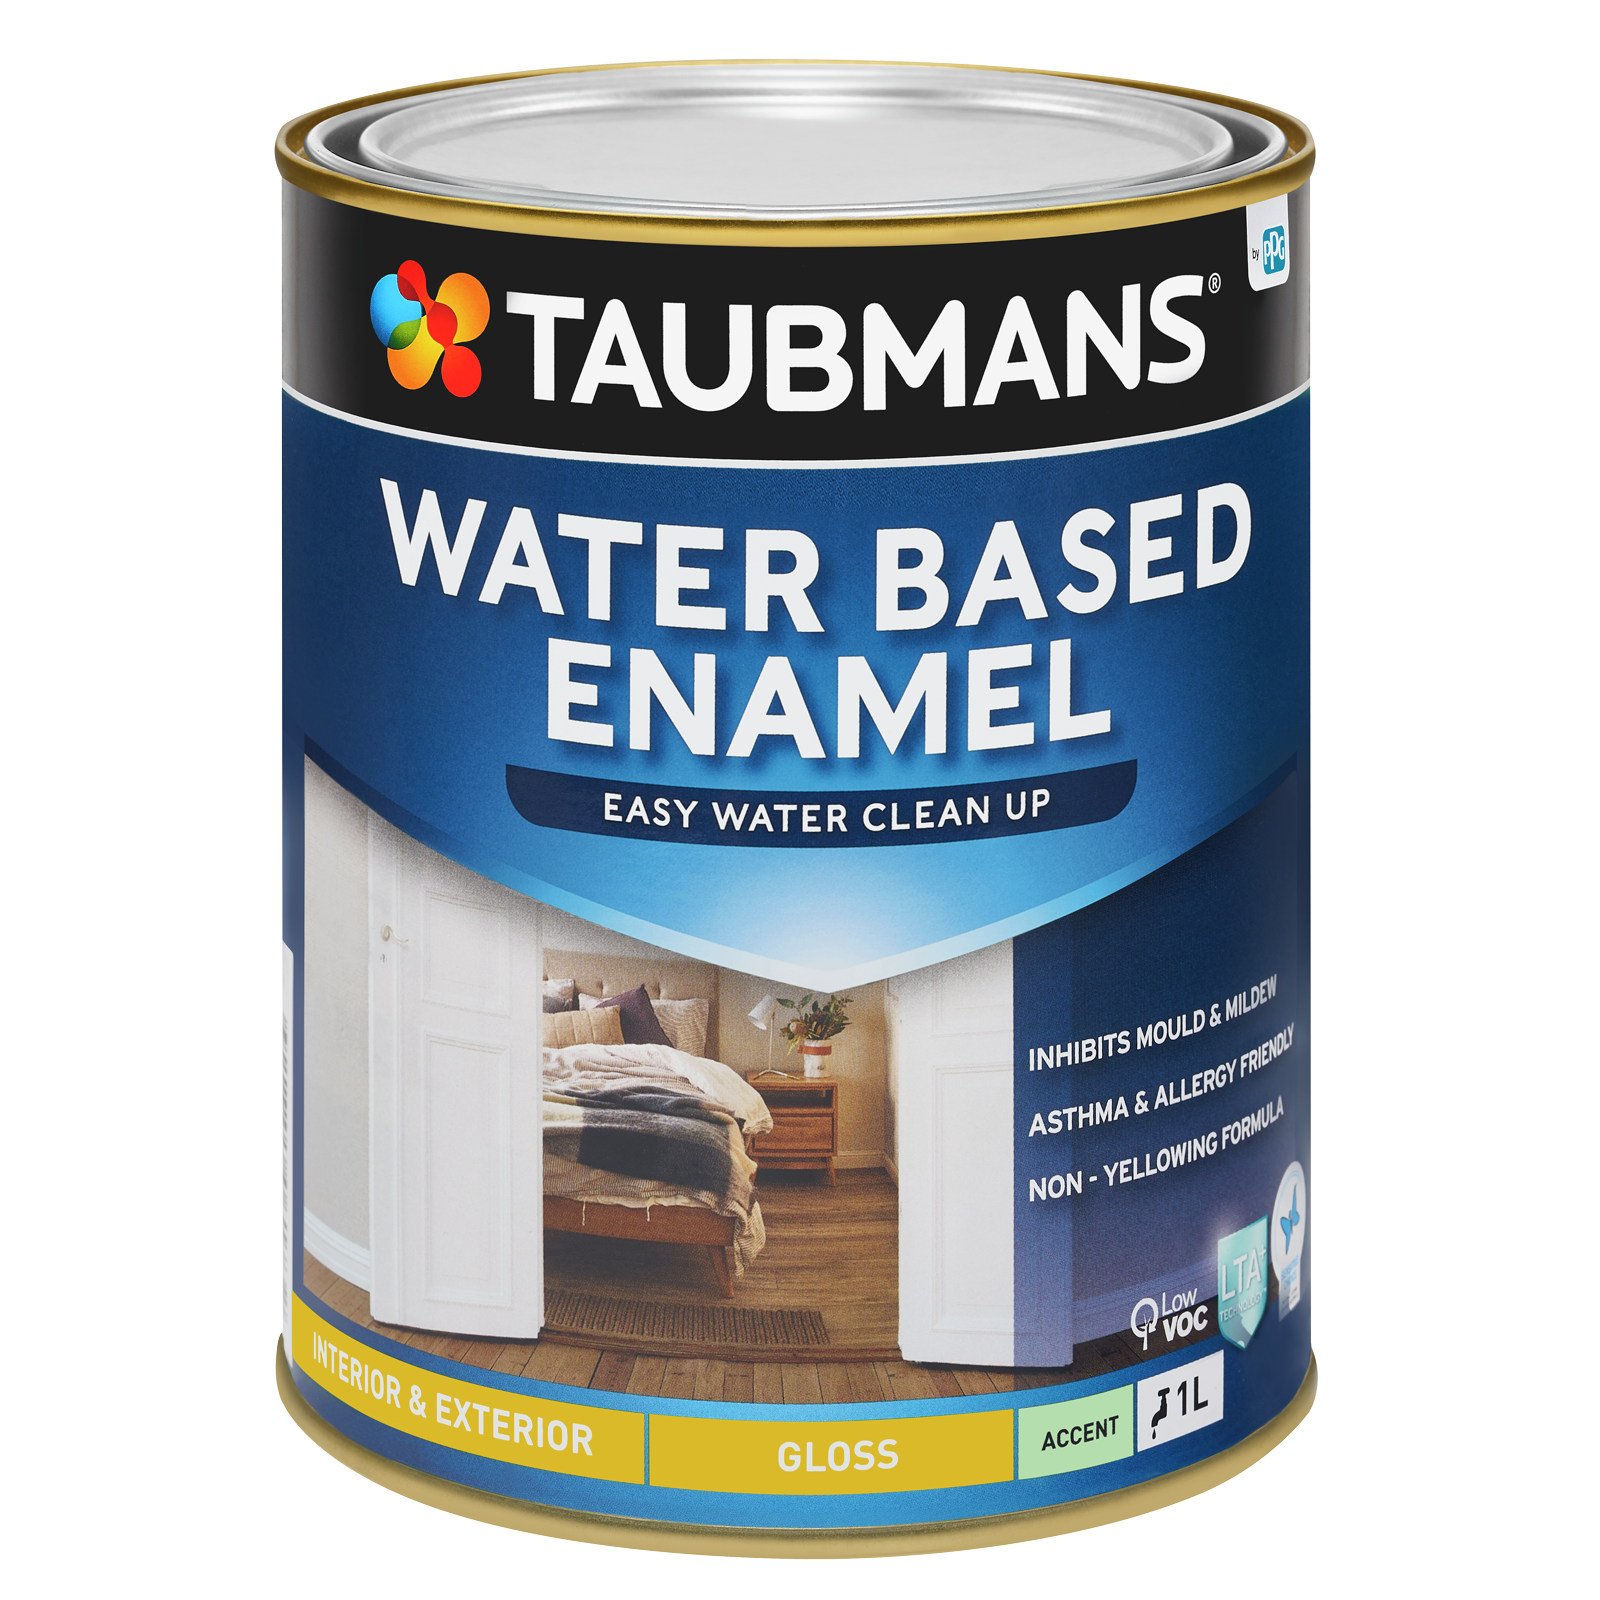 Taubmans 1L Accent Gloss Water Based Enamel